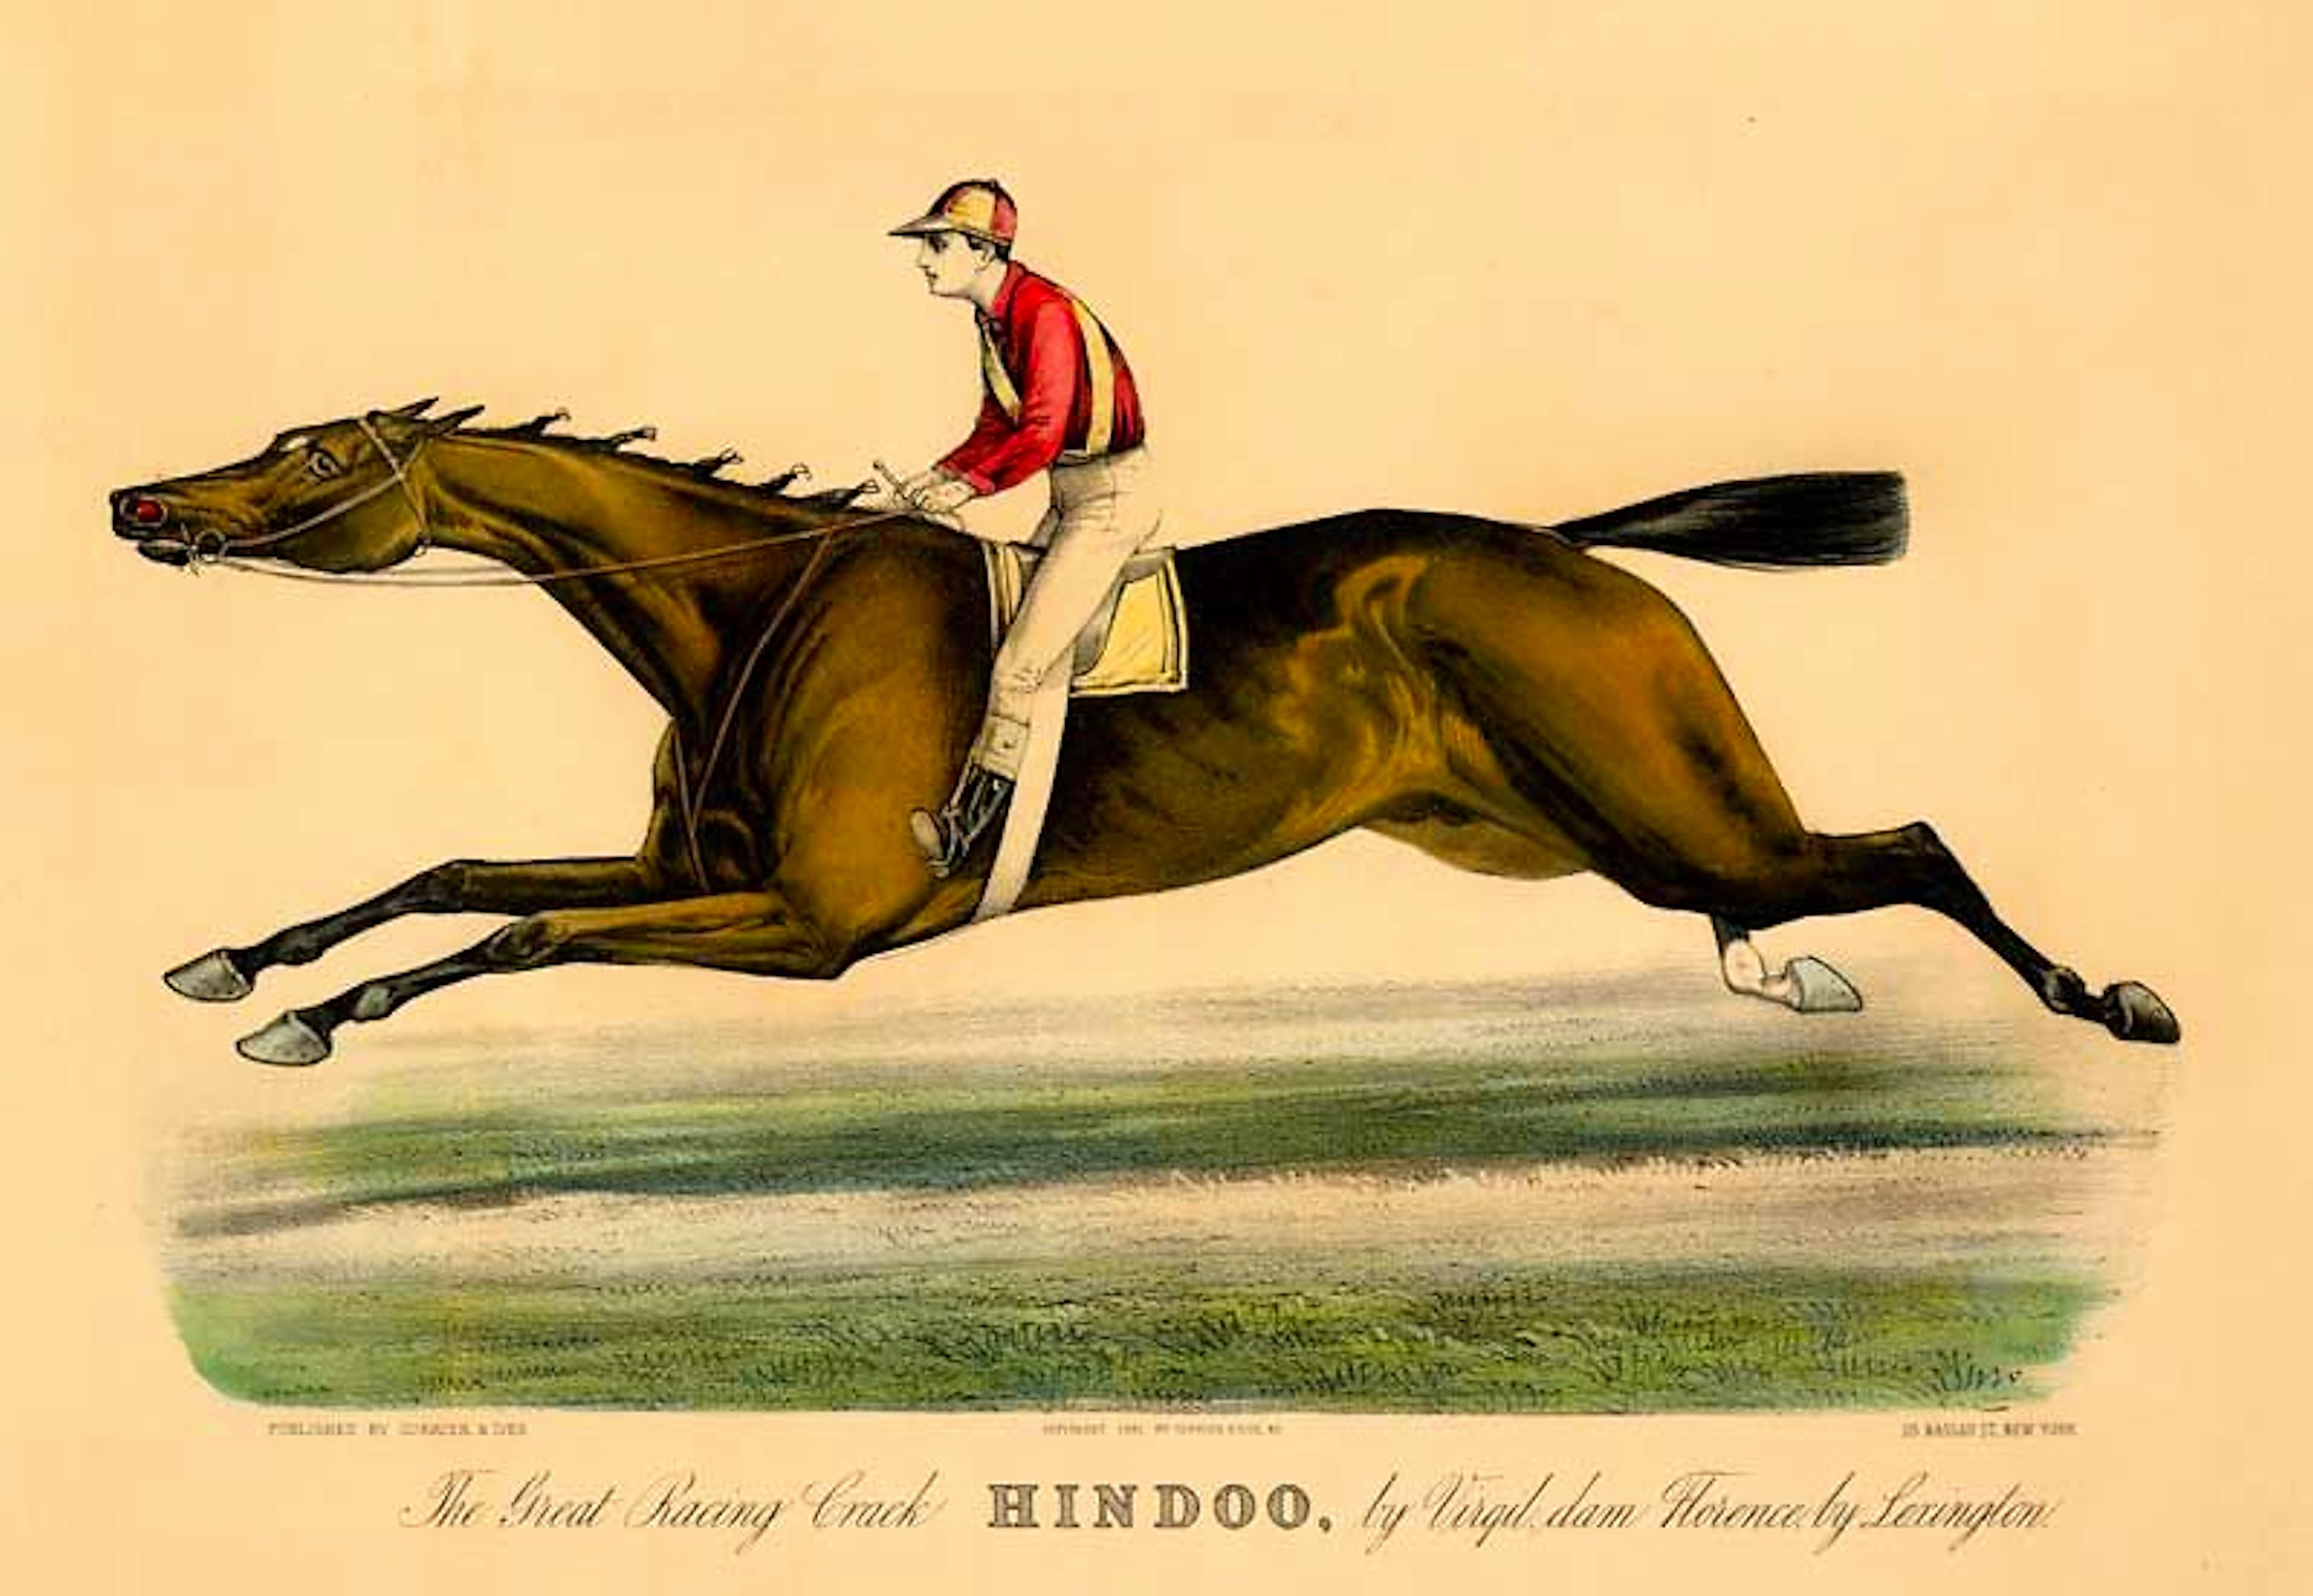 Hindoo (Currier and Ives)